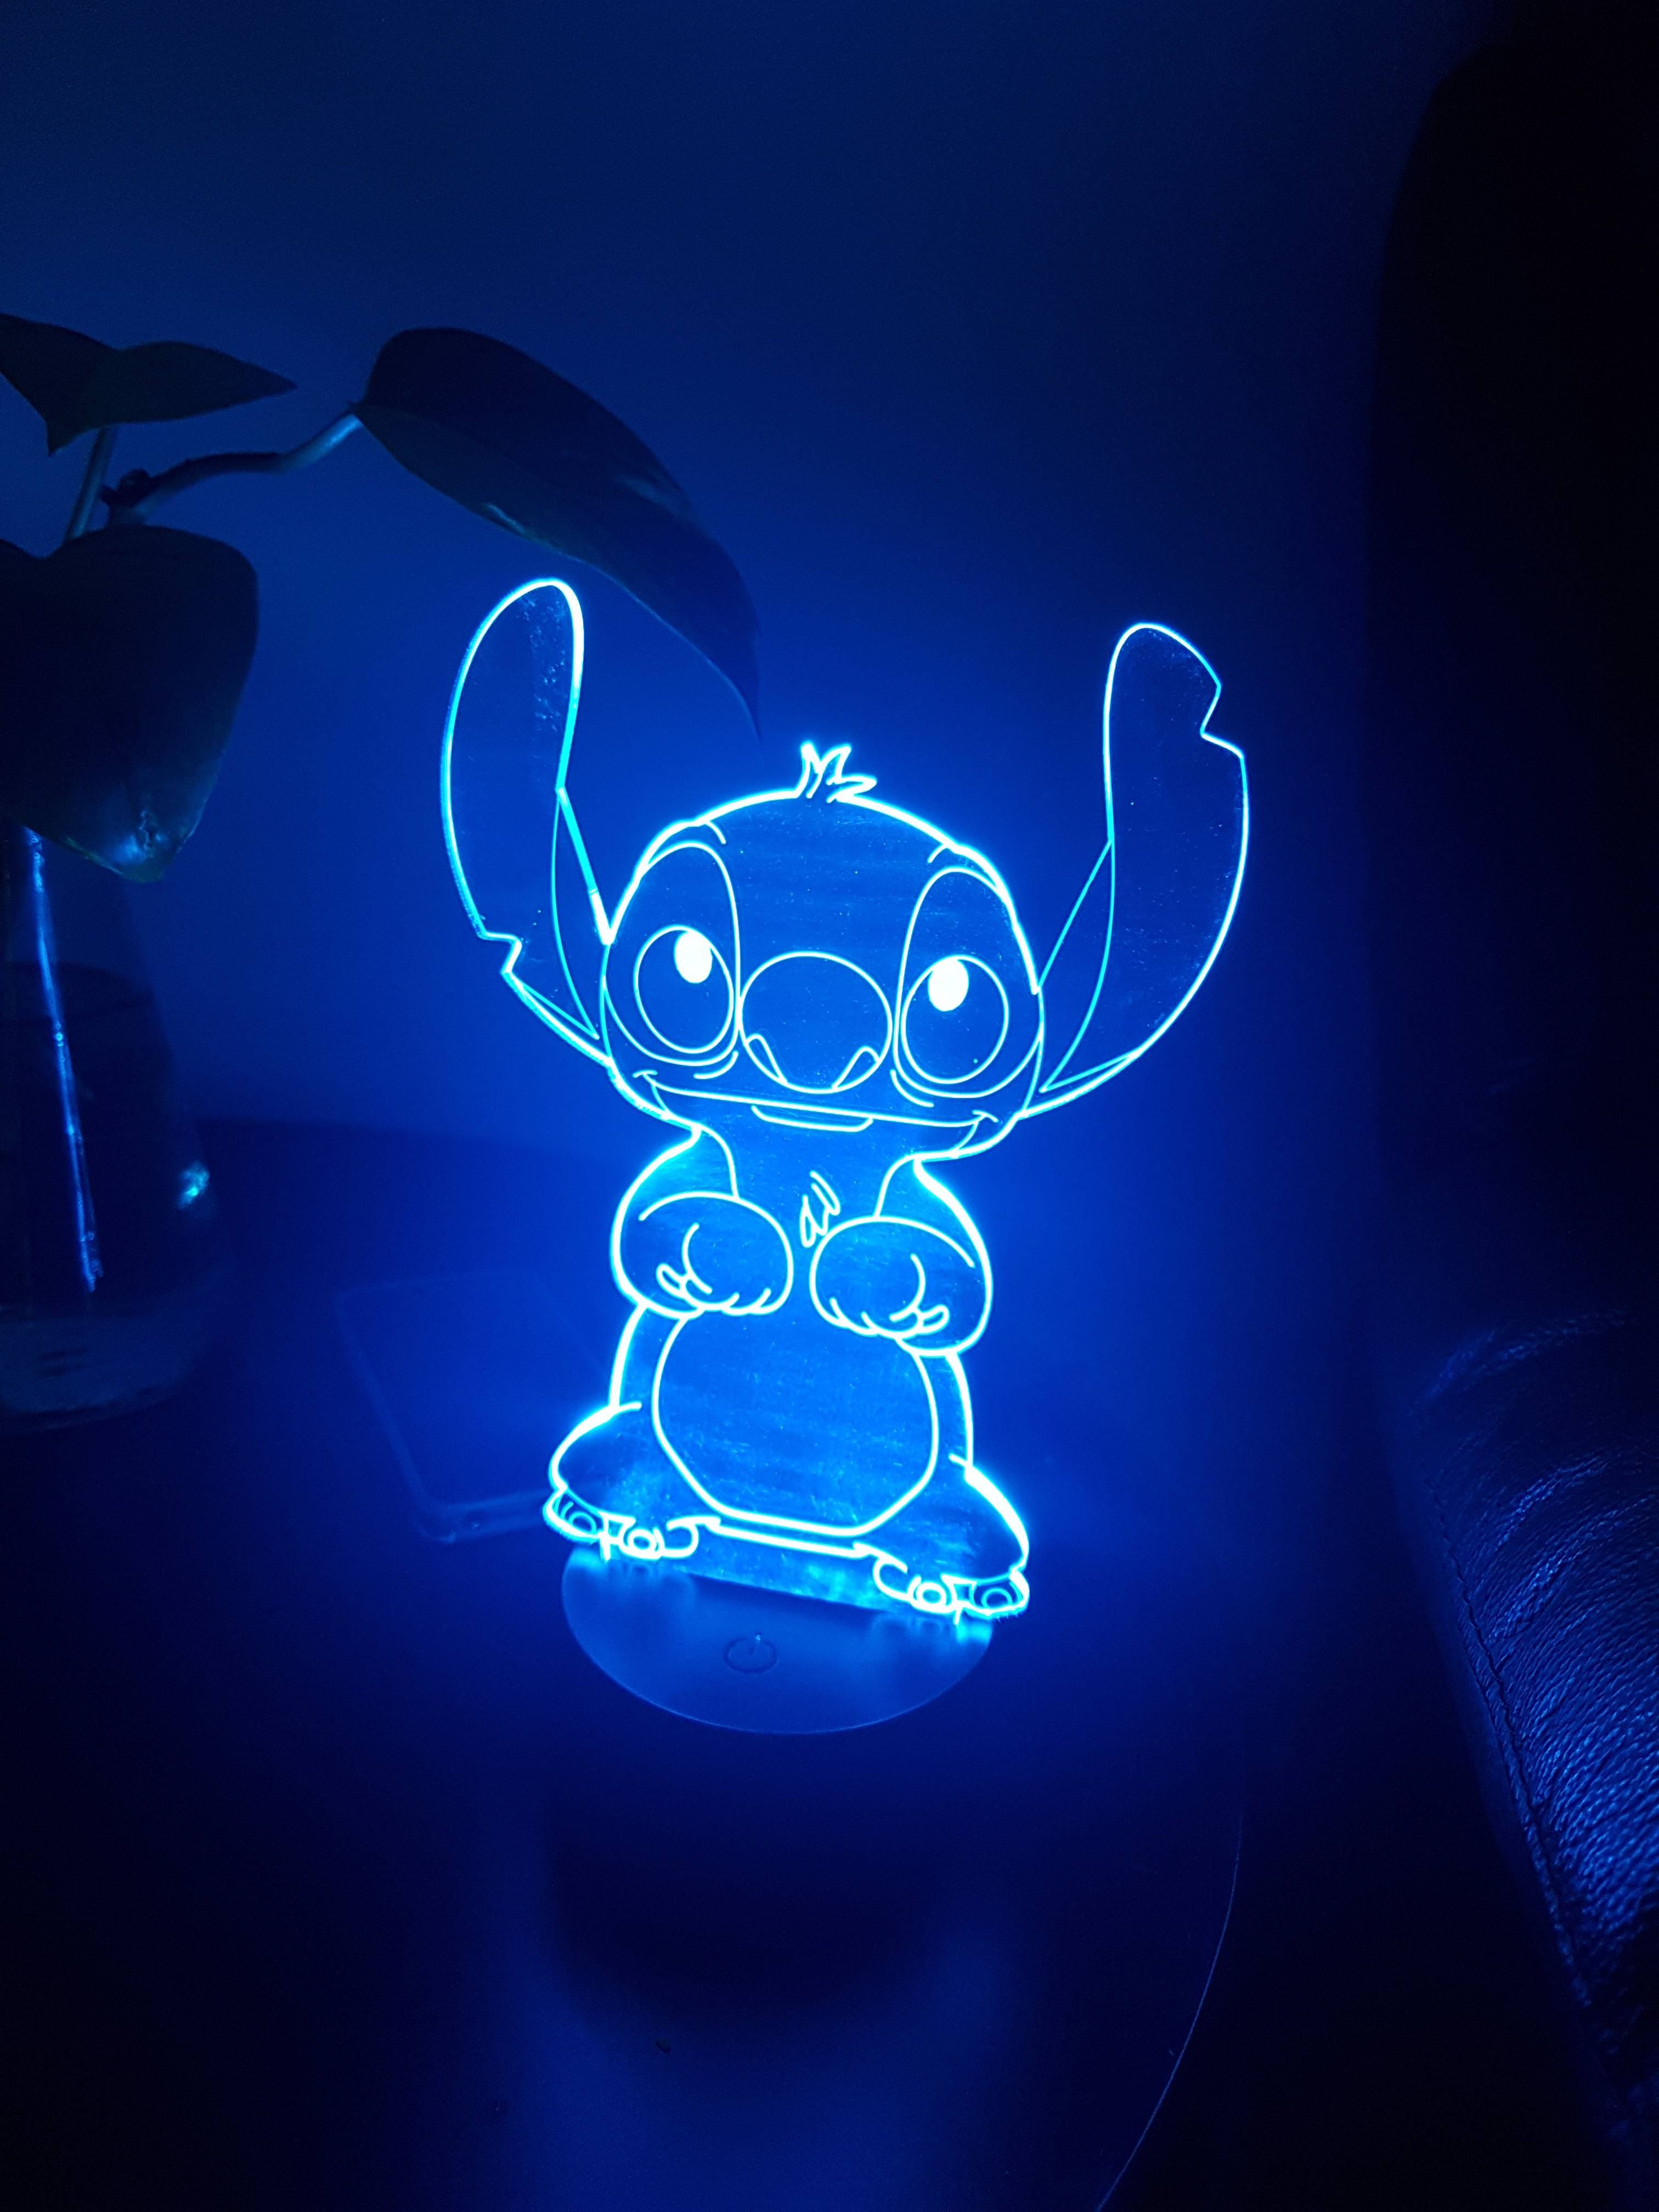 I bought a new lamp. I just hope it doesn't back up sewers reverse street signs and steal everyone's left shoe. #stitchdisney